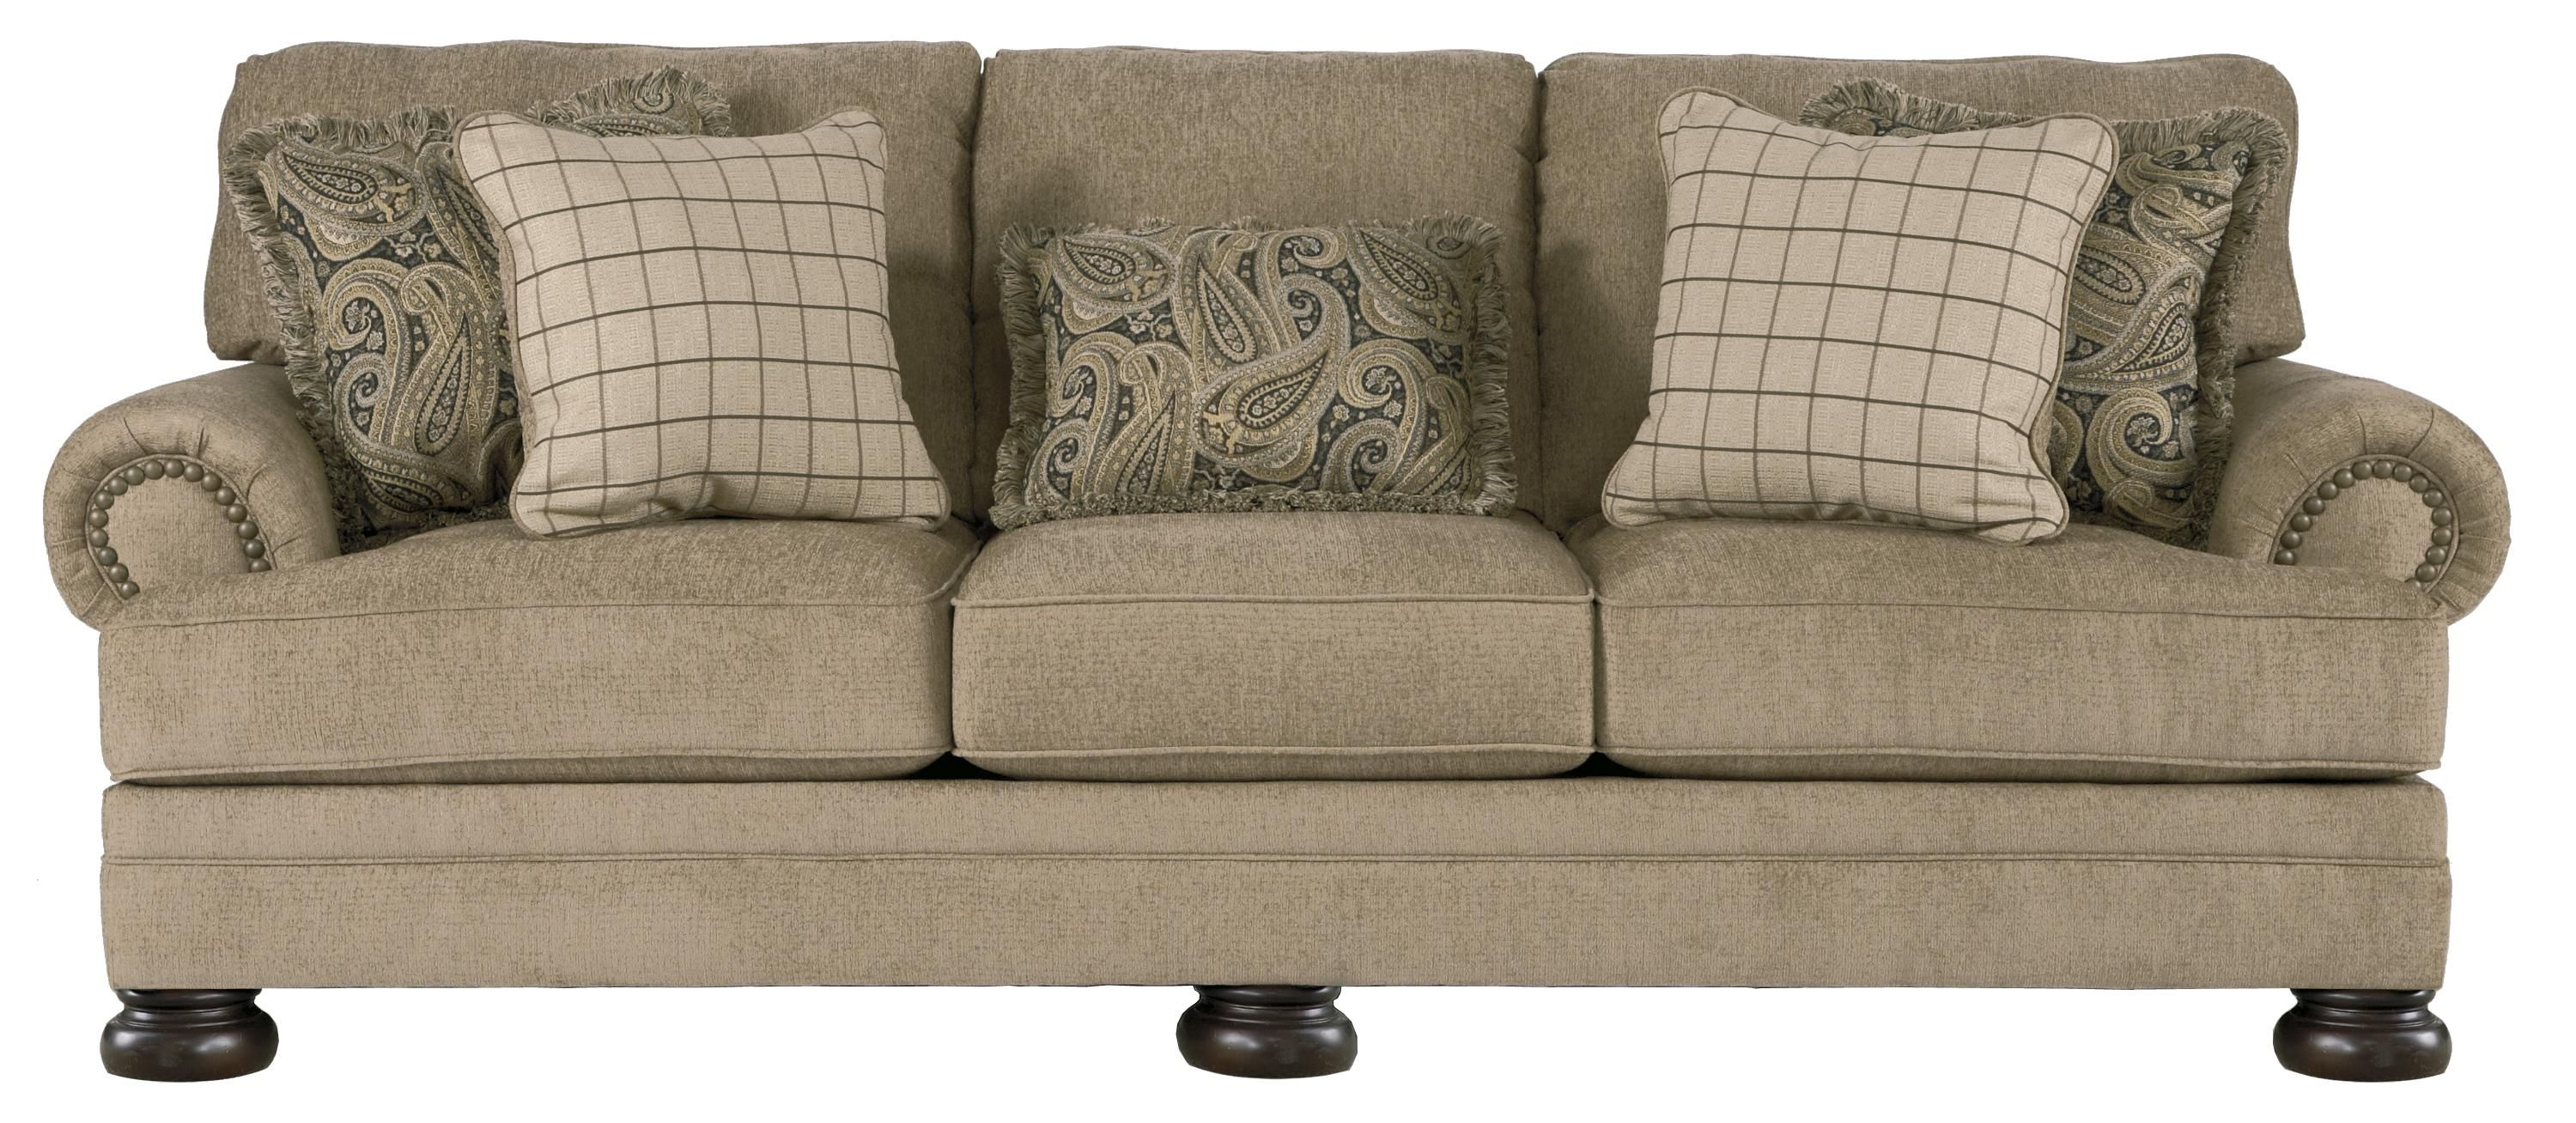 Keereel Sand Transitional Sofa With Rolled Arms And Bun Feet By Signature Design Ashley At Royal Furniture